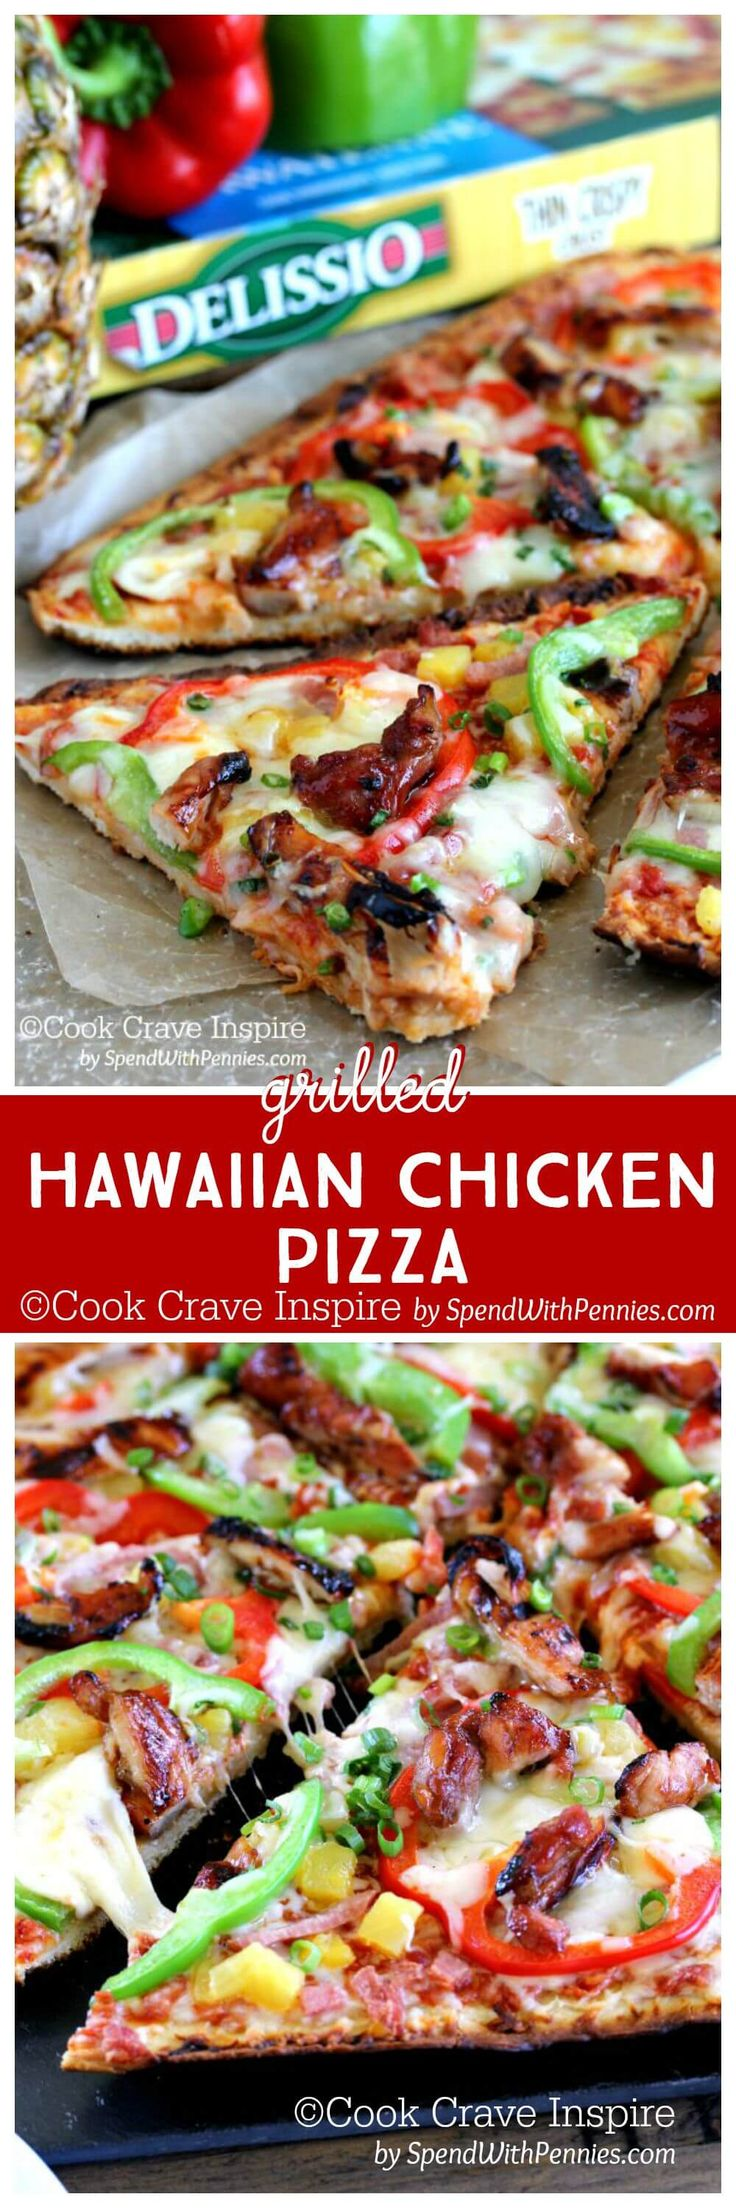 Hawaiian Chicken Grilled Pizza!  Total pizza perfection on the grill with ham and pineapple pizza topped with chicken & peppers! #ad #Halfwayhomemade An easy appetizer or meal! Perfect for any #pizzanight @Delissio